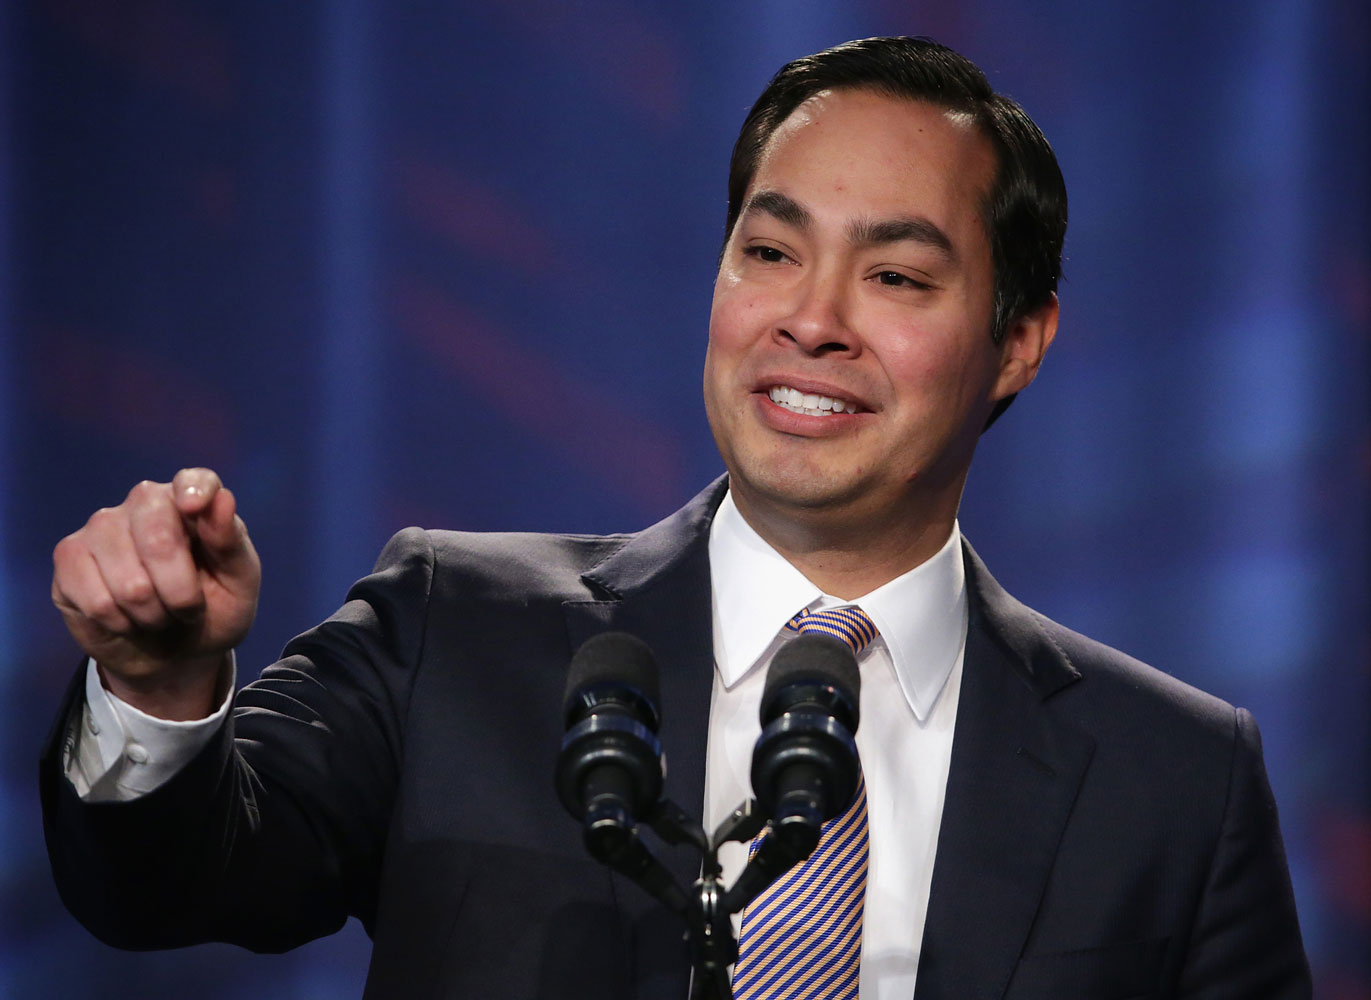 Mayor of San Antonio, Texas, Julian Castro speaks during the opening plenary session of Families USA's Health Action 2014 conference Jan. 23, 2014 in Washington, DC. Alex Wong—Getty Images